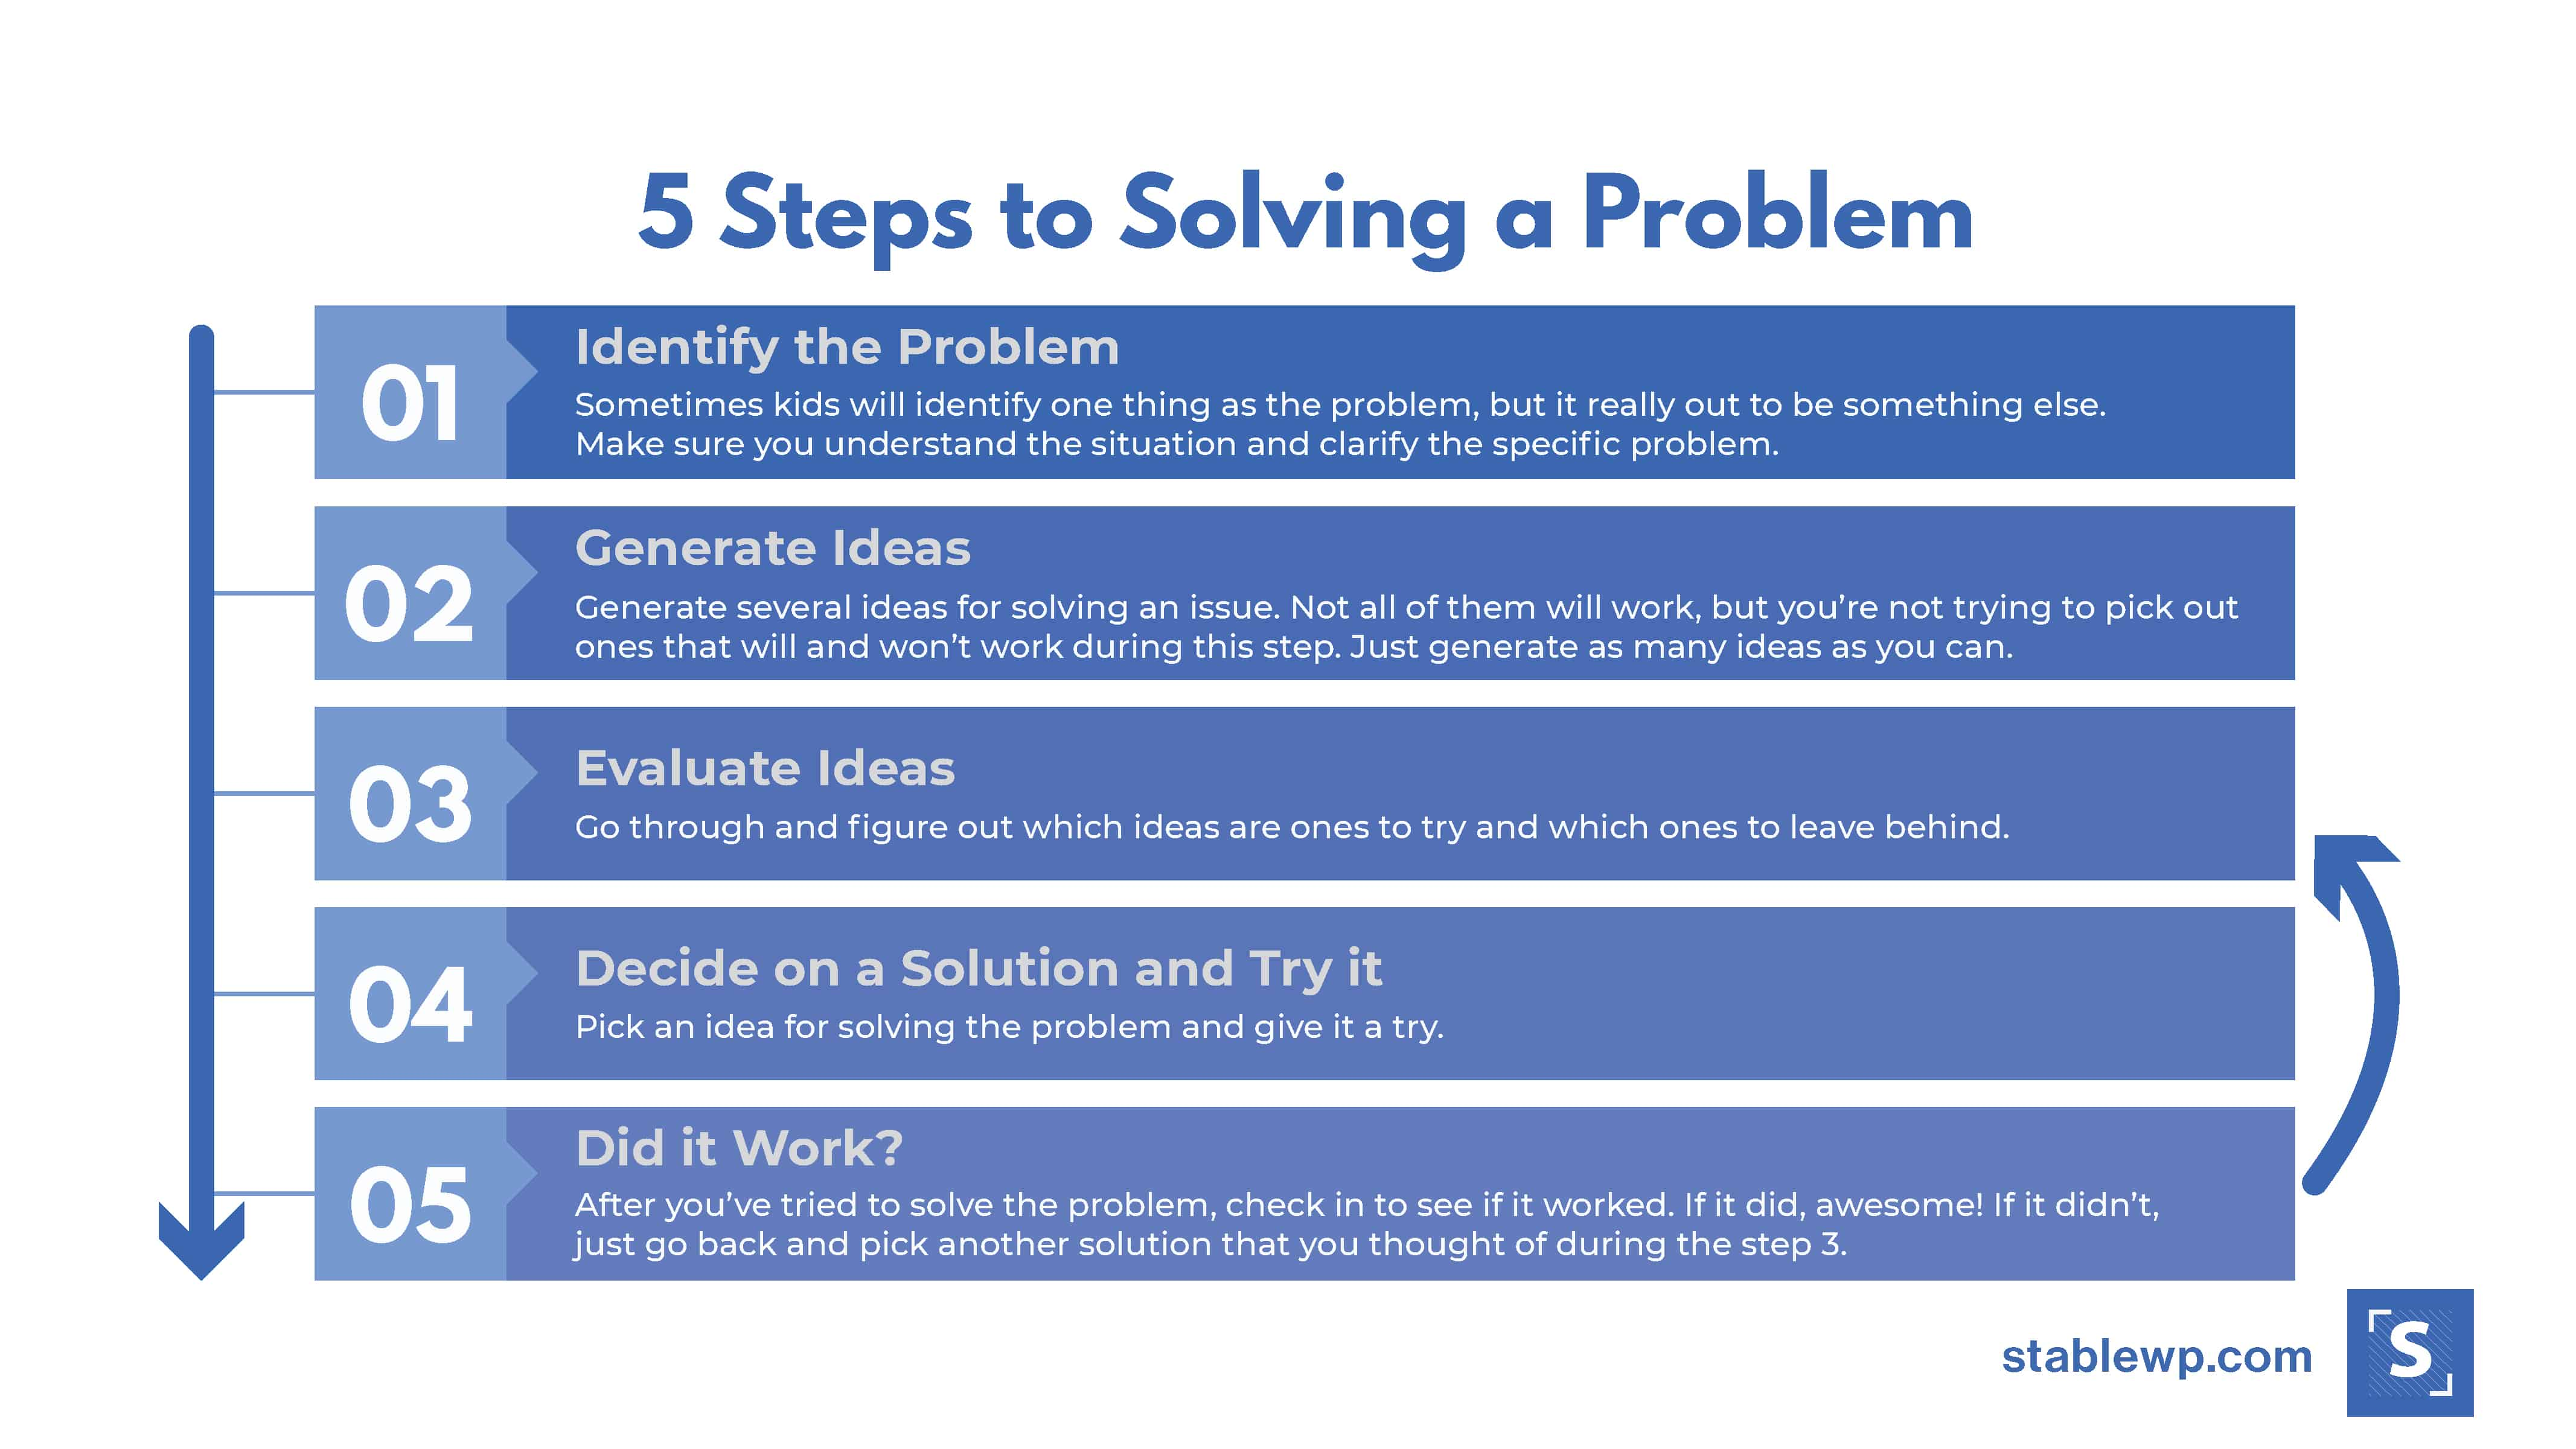 5 steps to solving a problem